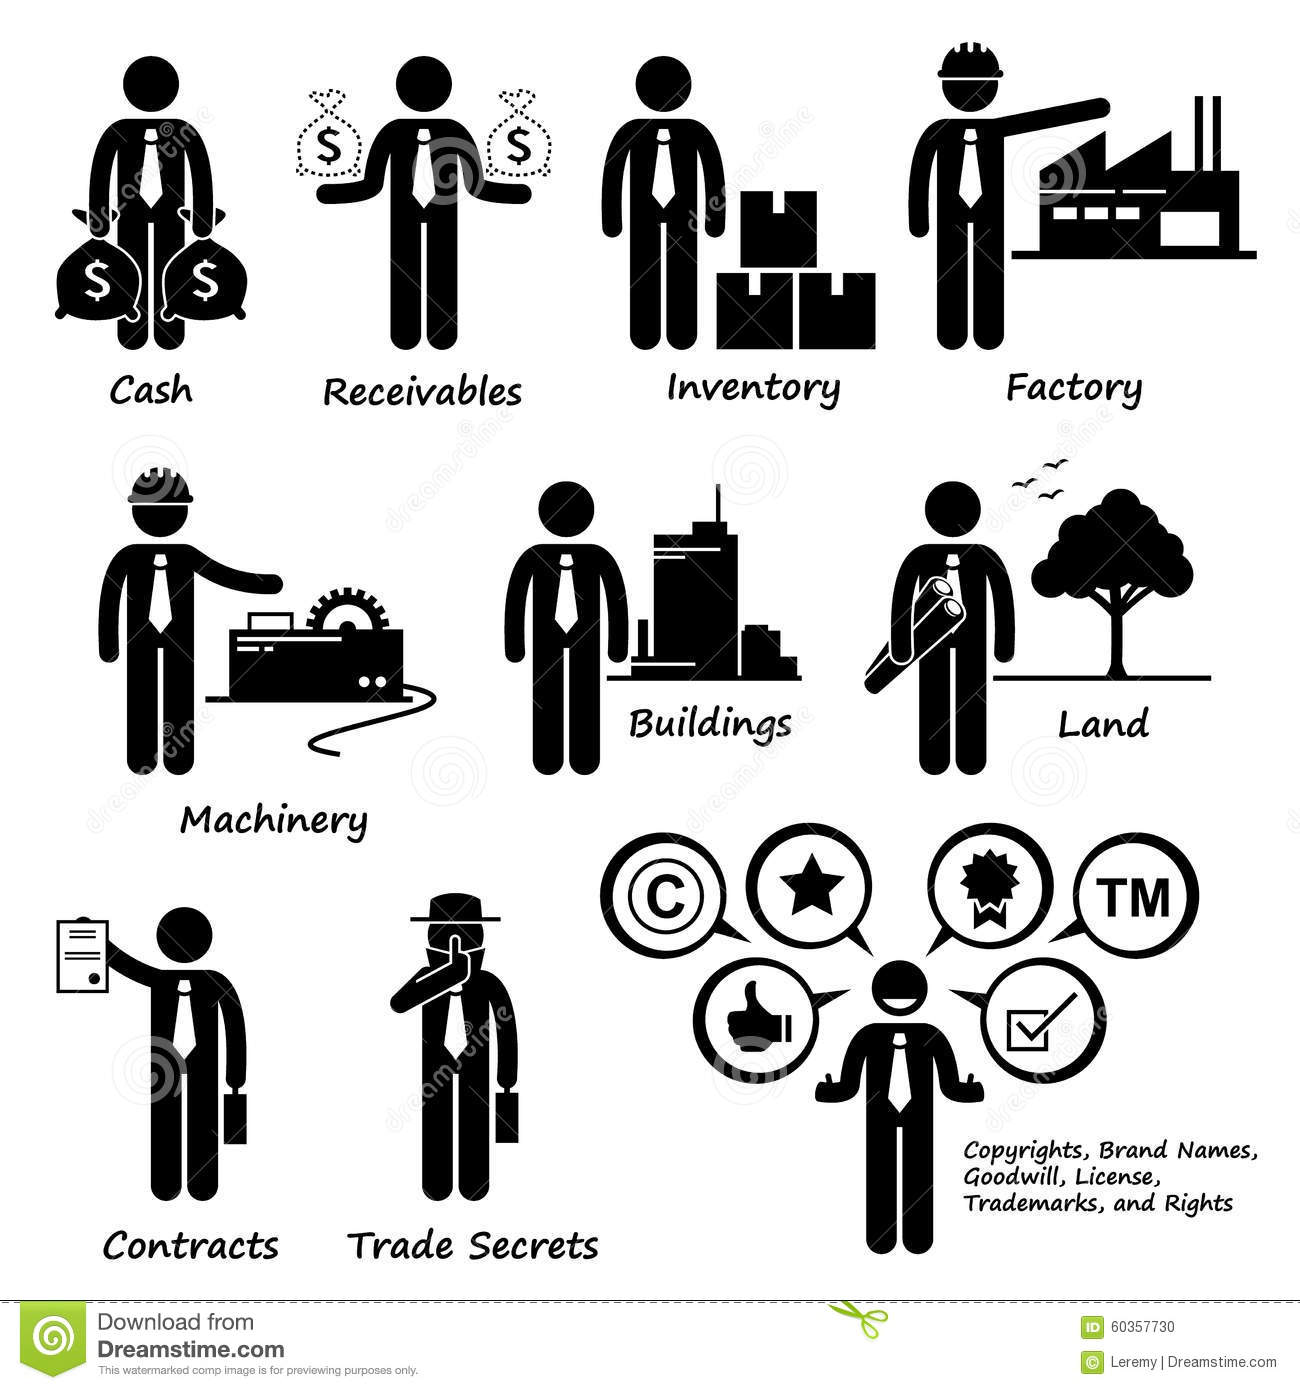 Company Business Assets Pictogram Clipart Stock Vector